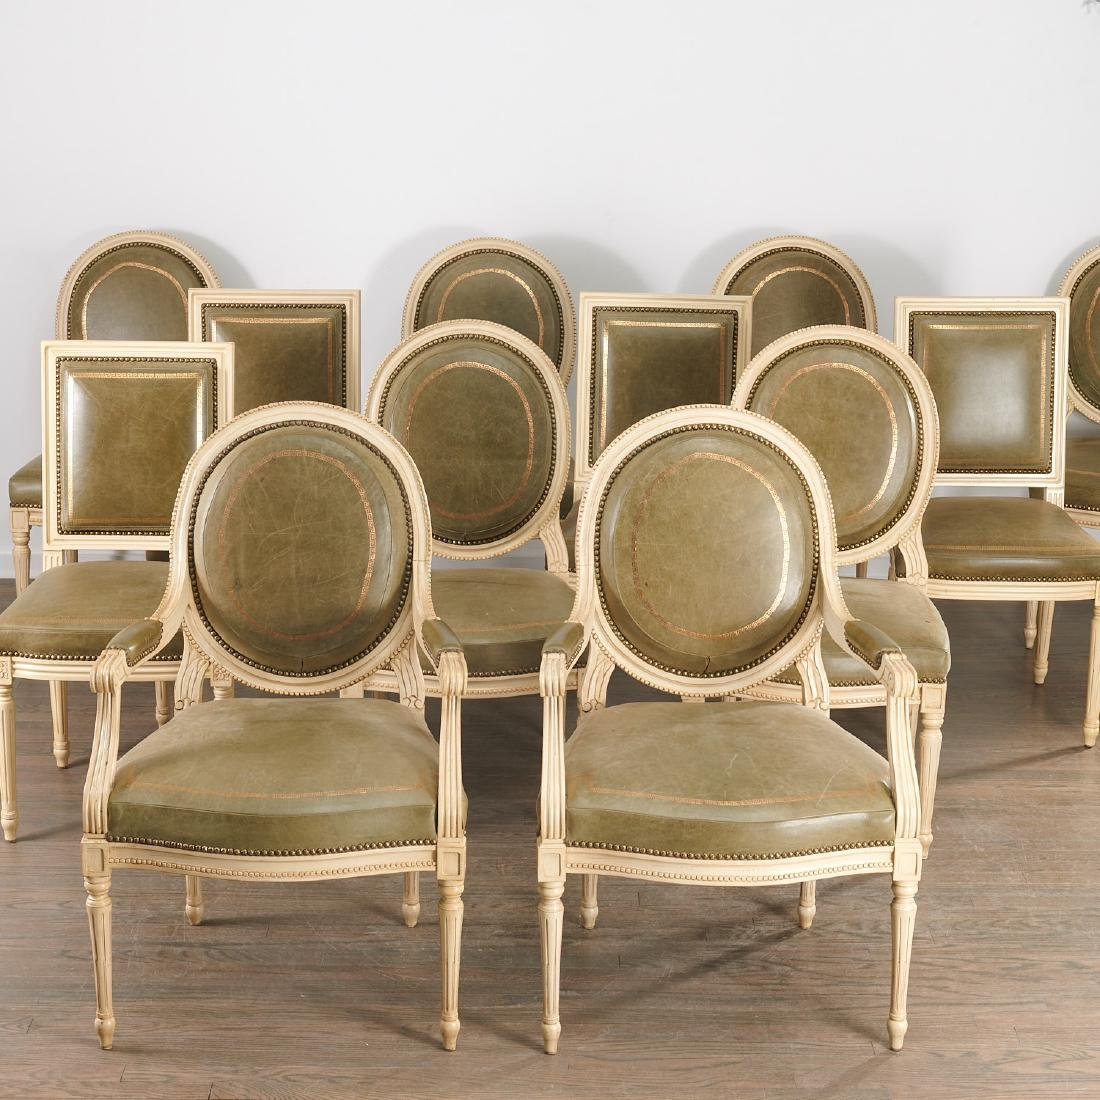 Nice set (12) Louis XVI style dining chairs